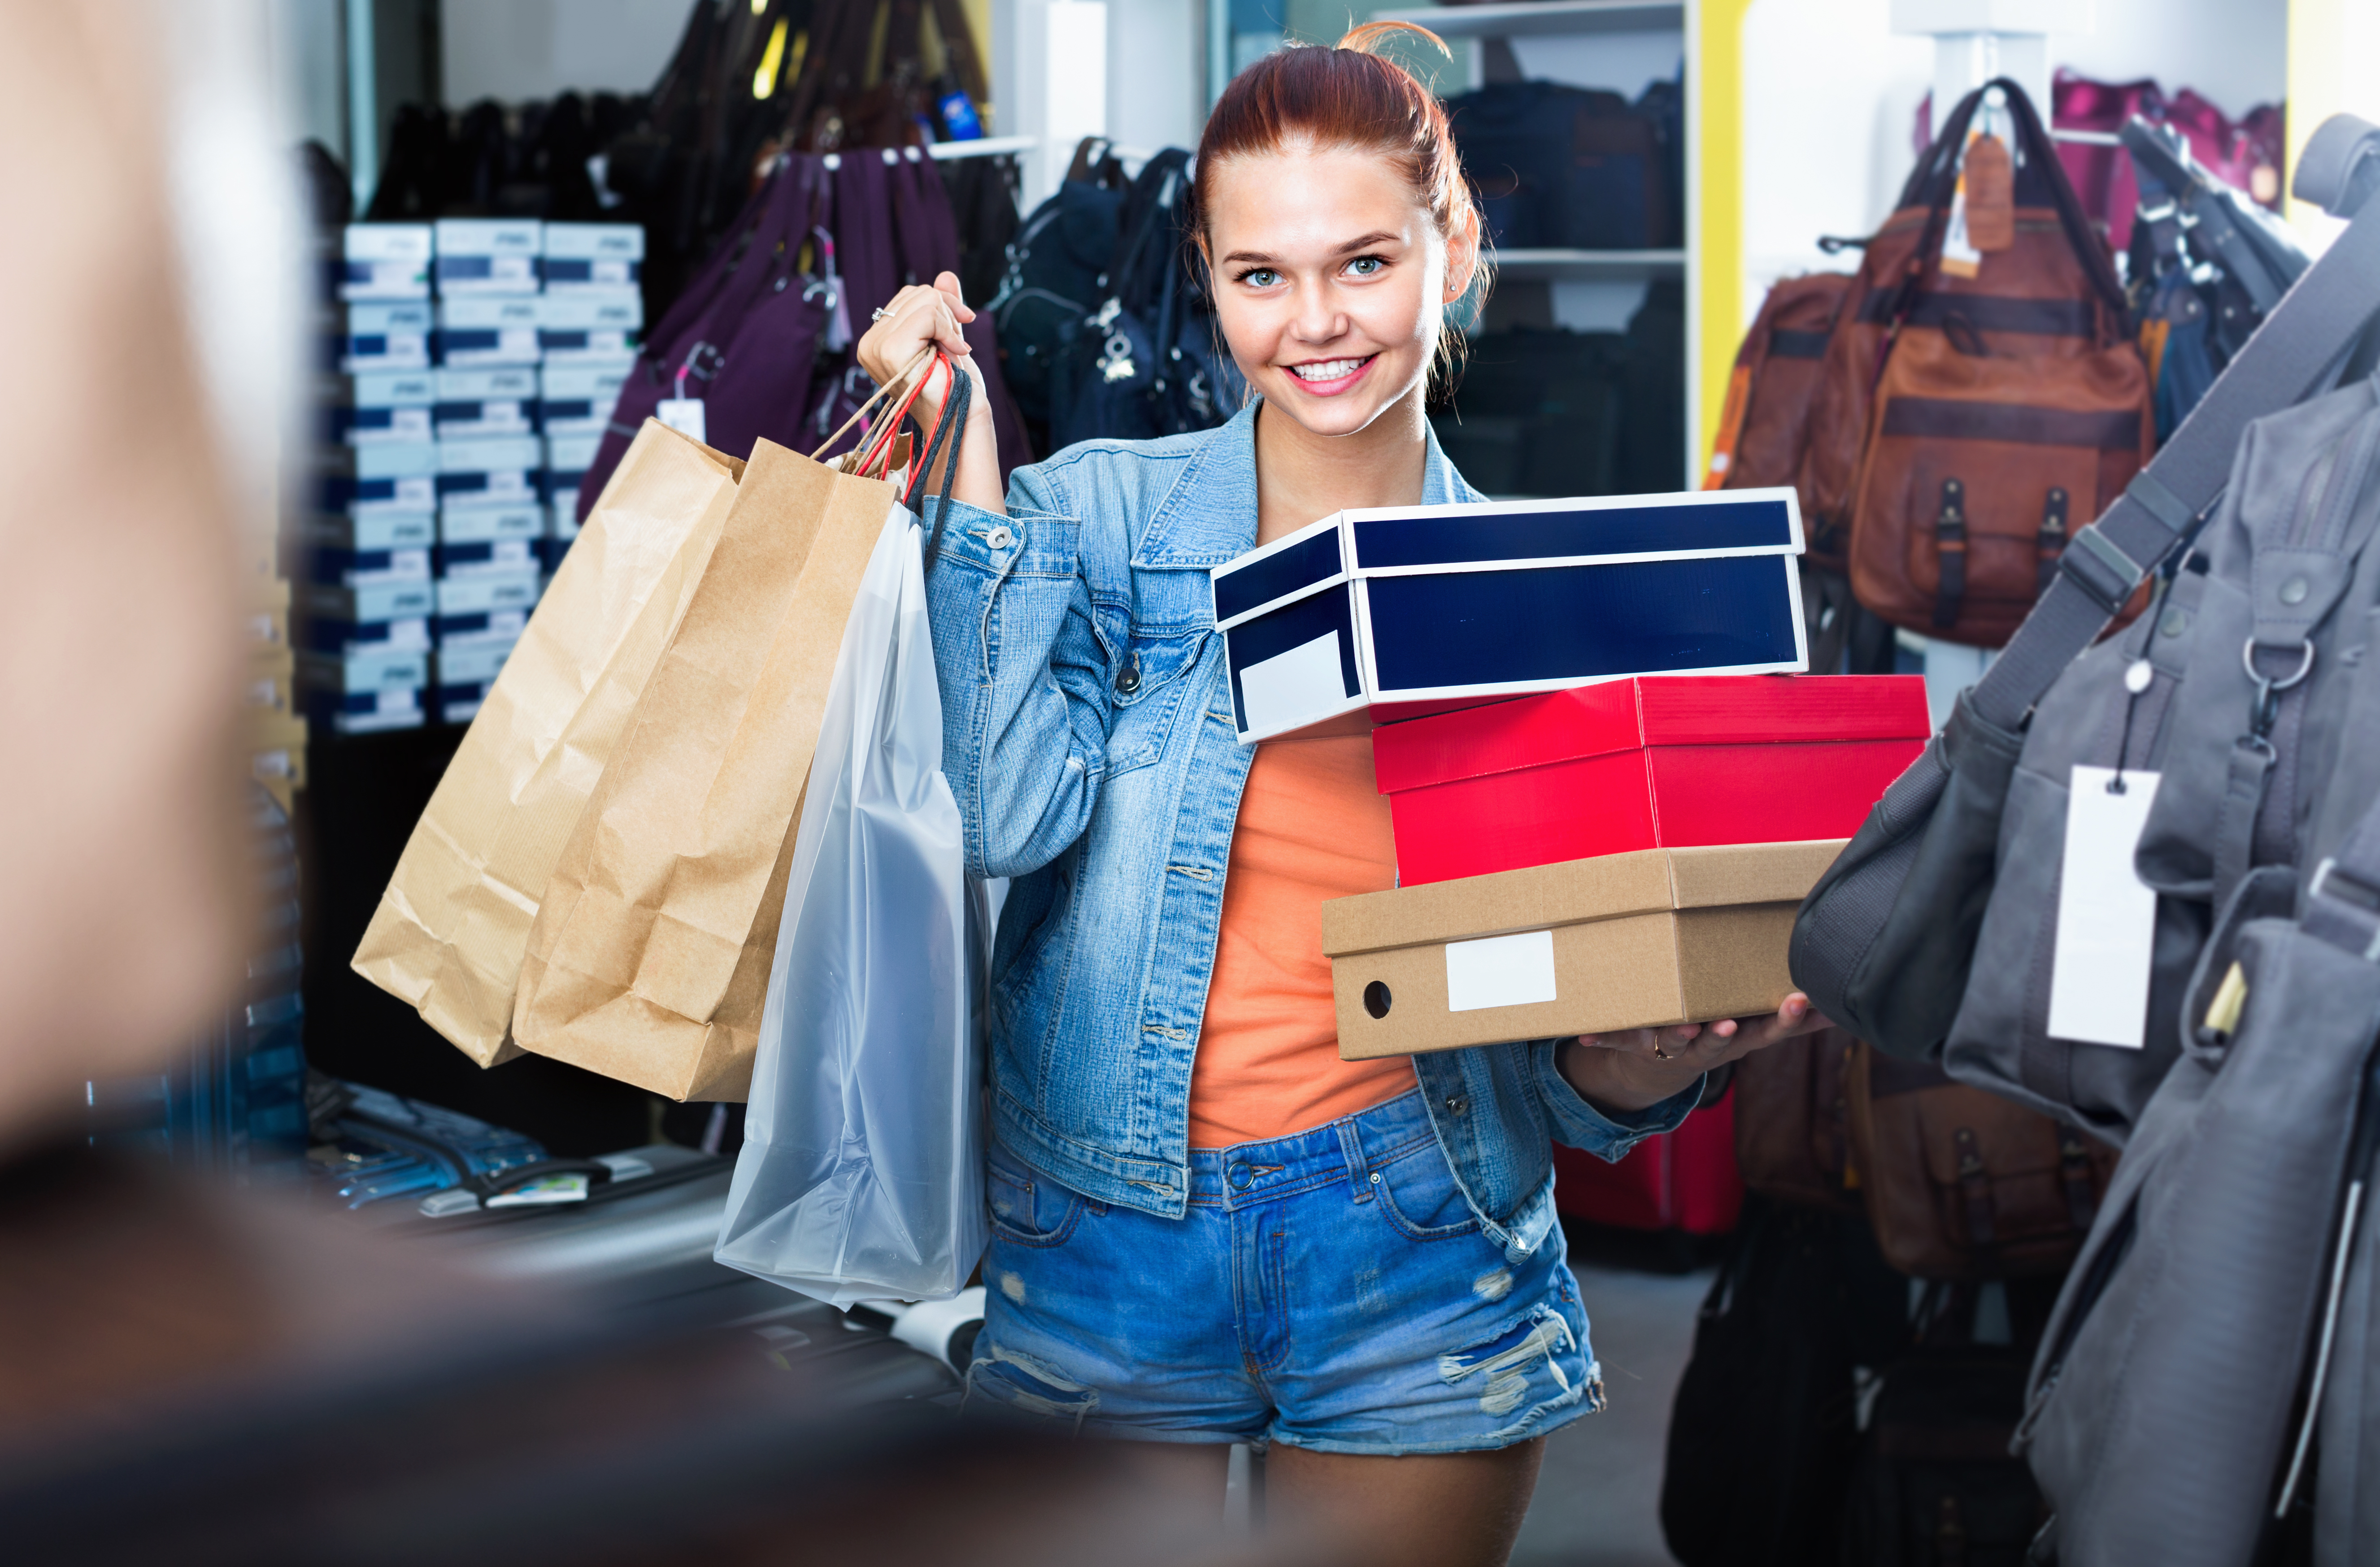 online shopping versus traditional brick and mortar Qiara perez: i believe that personal preference takes precedence when one decides whether they would like to shop in a traditional brick-and-mortar store or online i understand the benefits that.